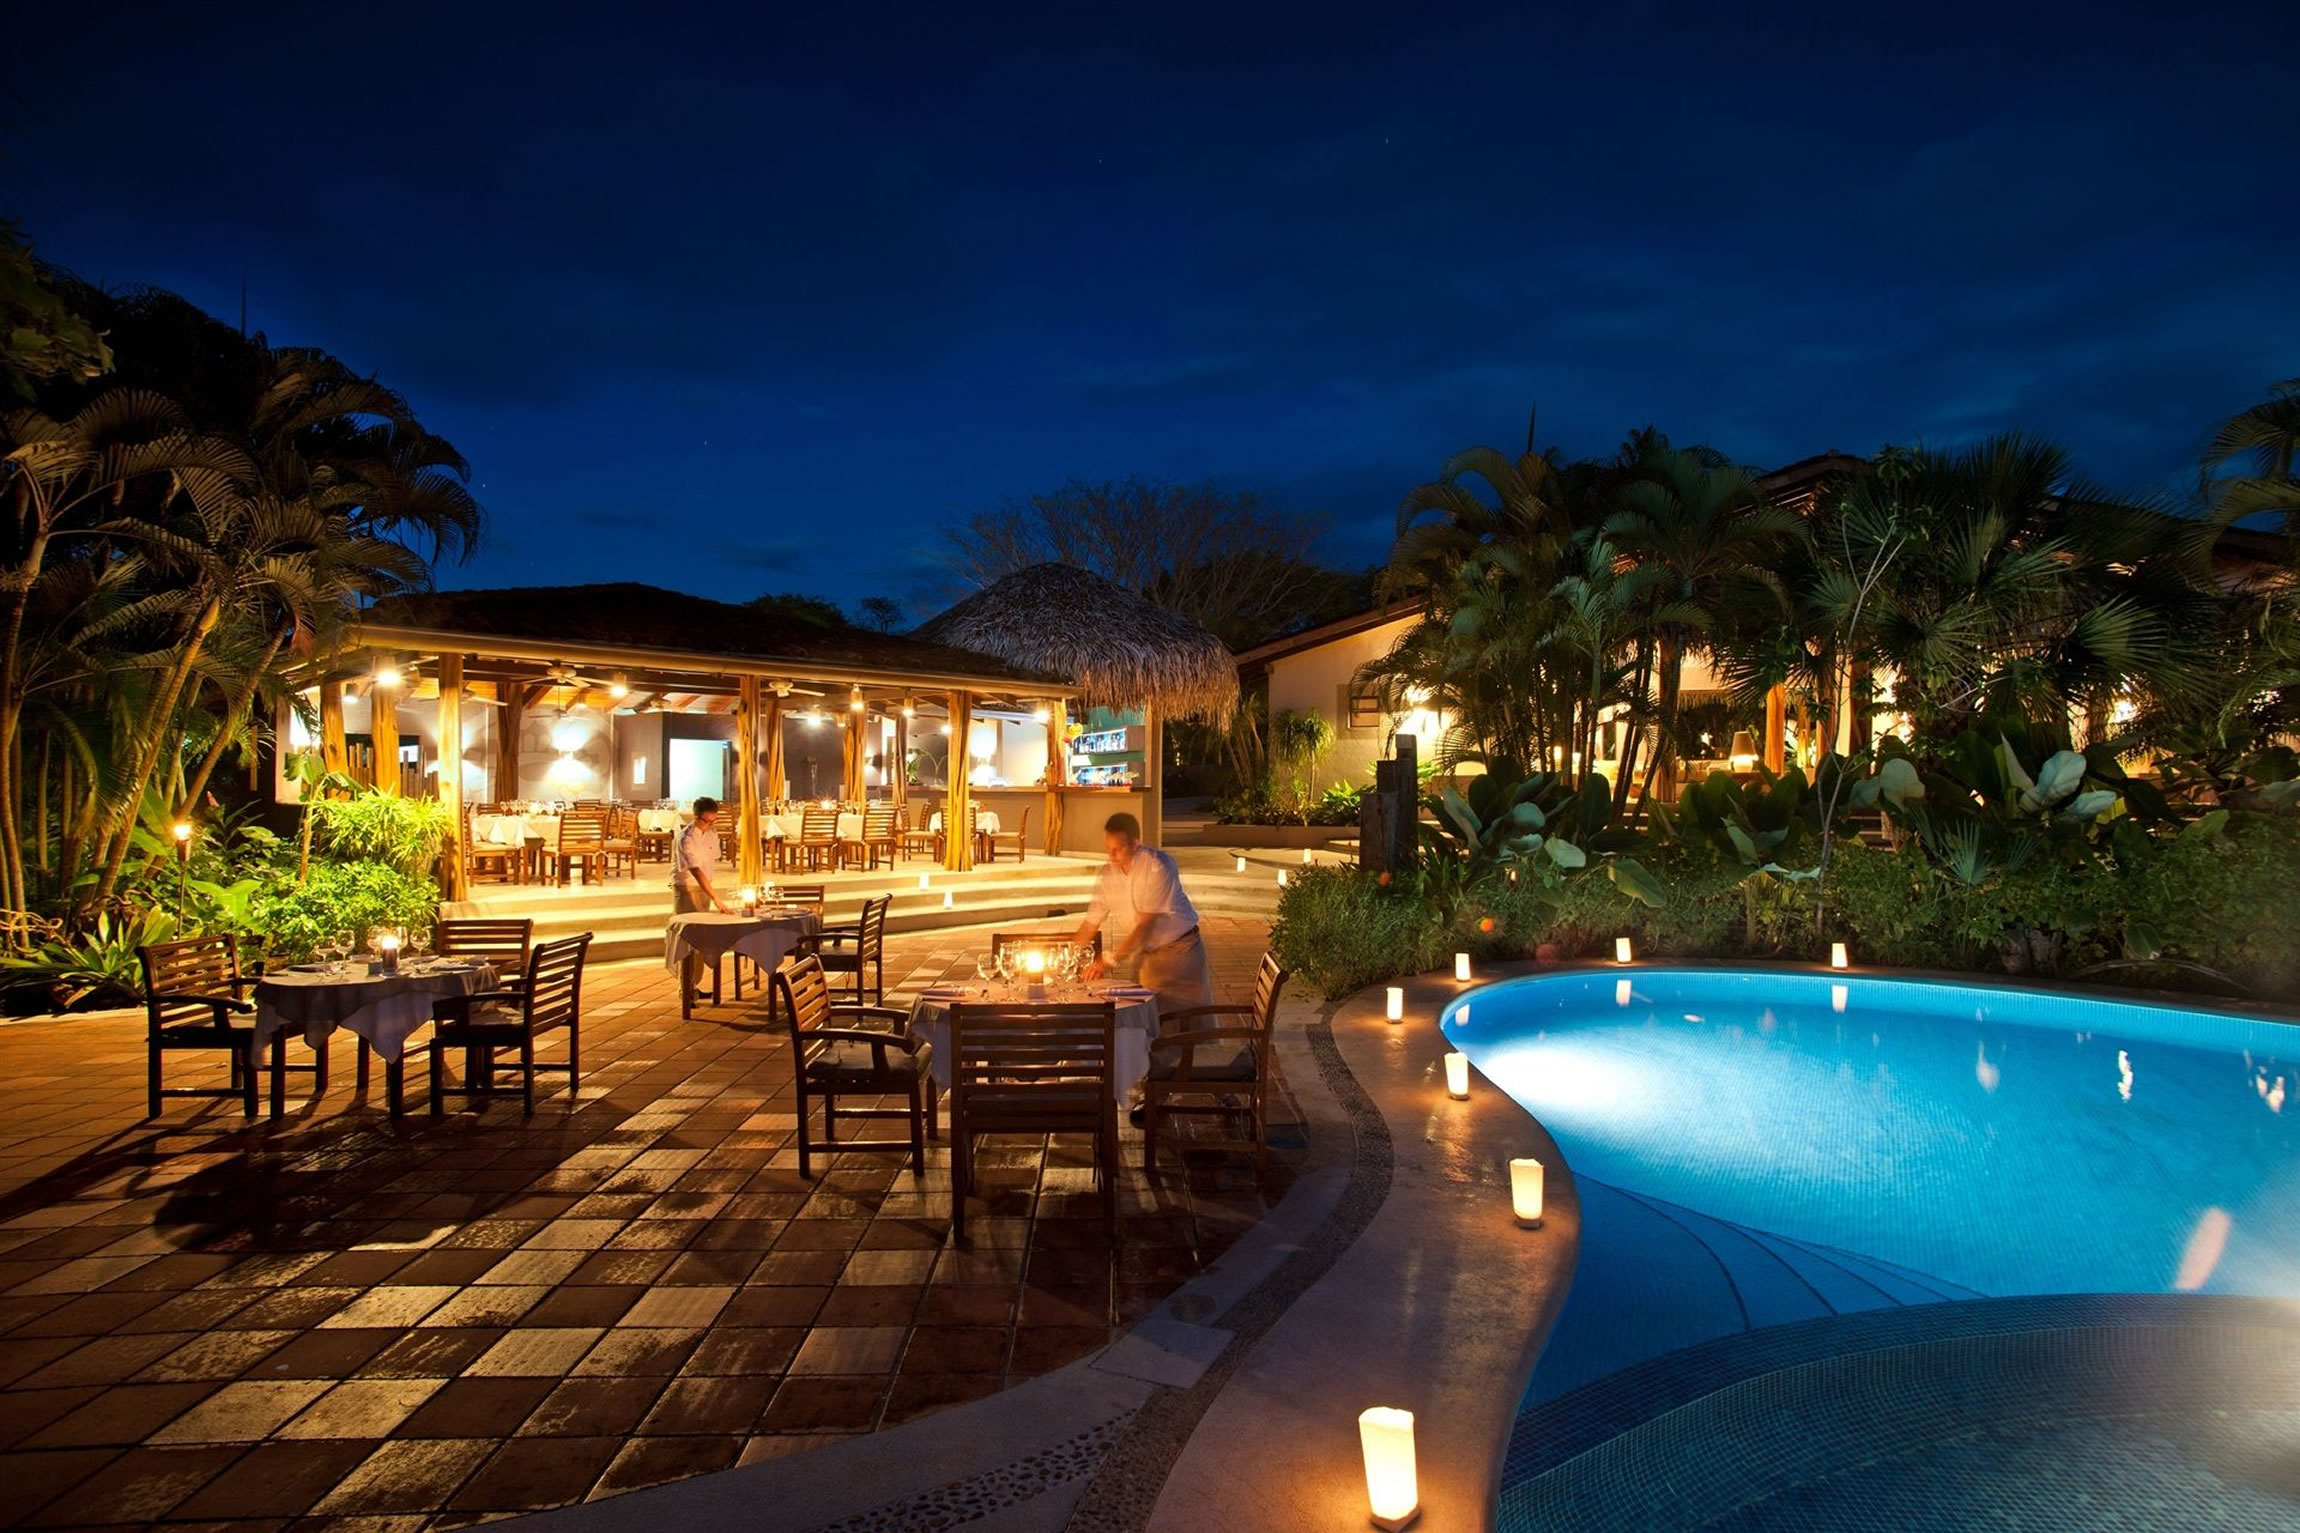 Costa-Rica-Holiday-Tours-Cala-Luna-Exterior-Night